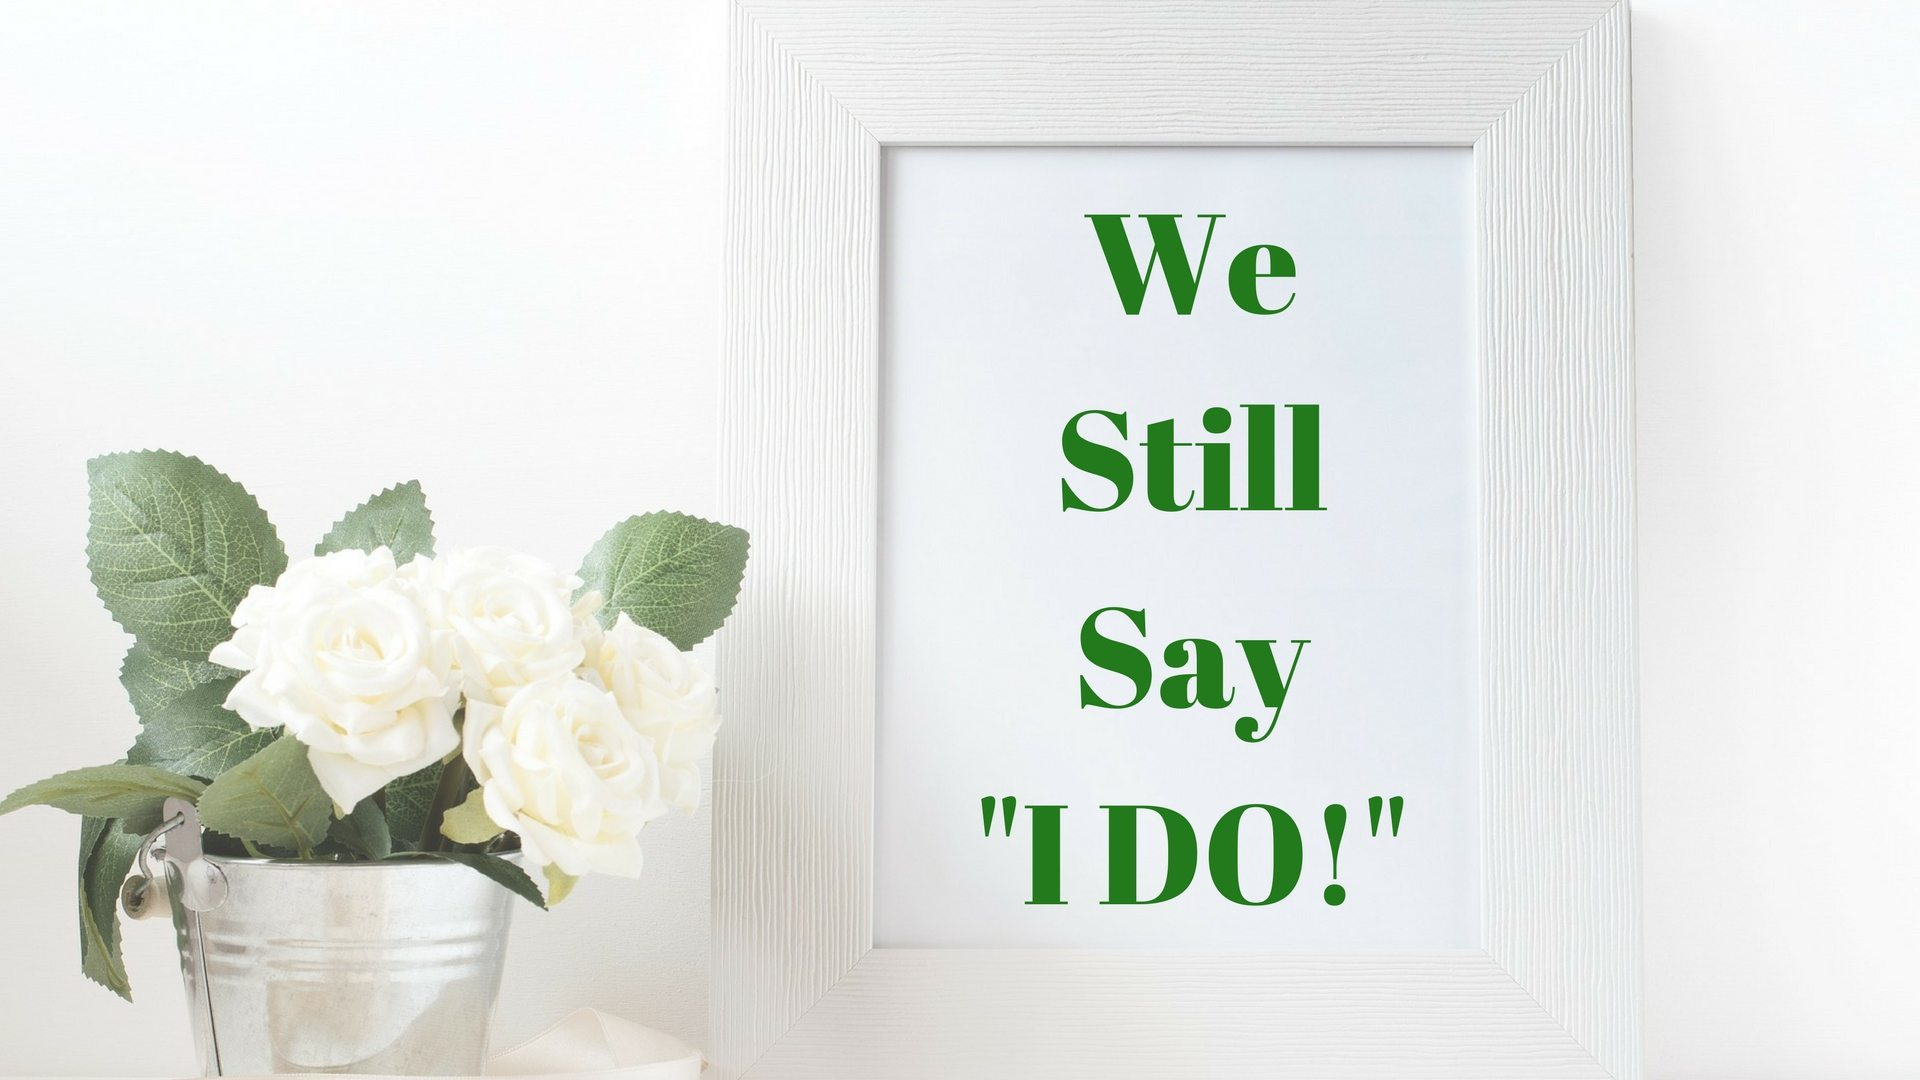 Anniversary We Still Say I DO! Pixabay - Canva